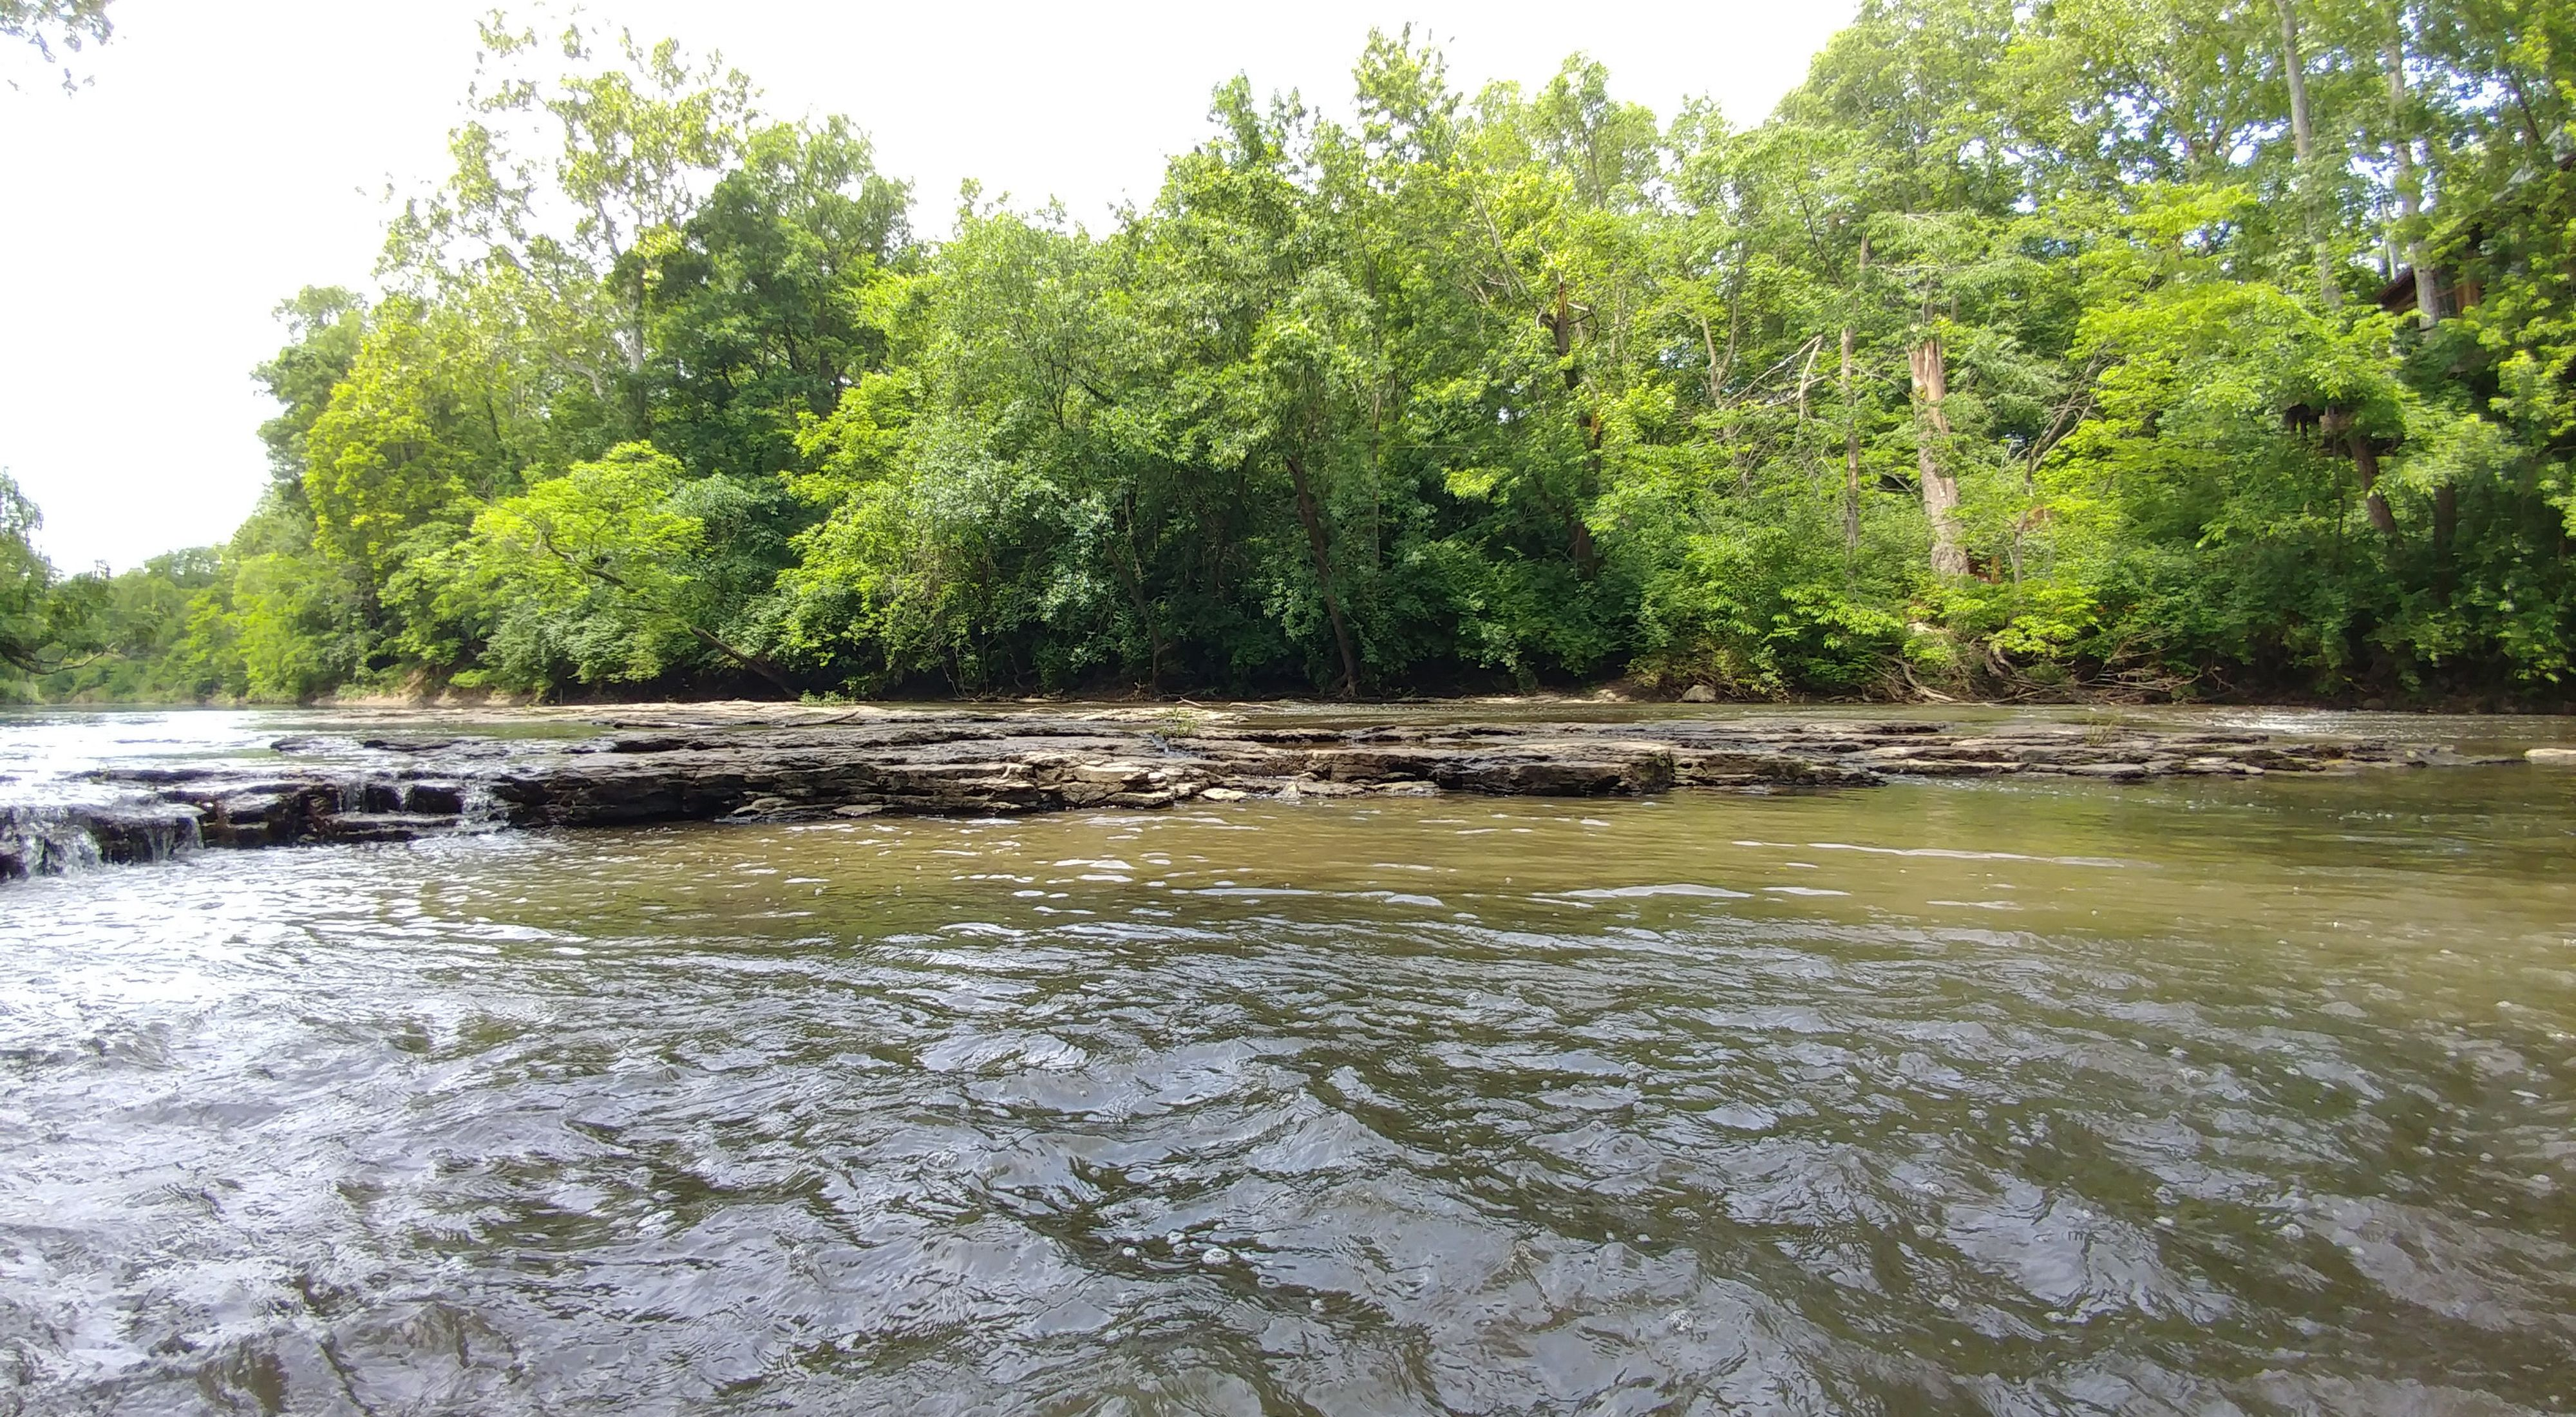 A broad river with trees on its bank.